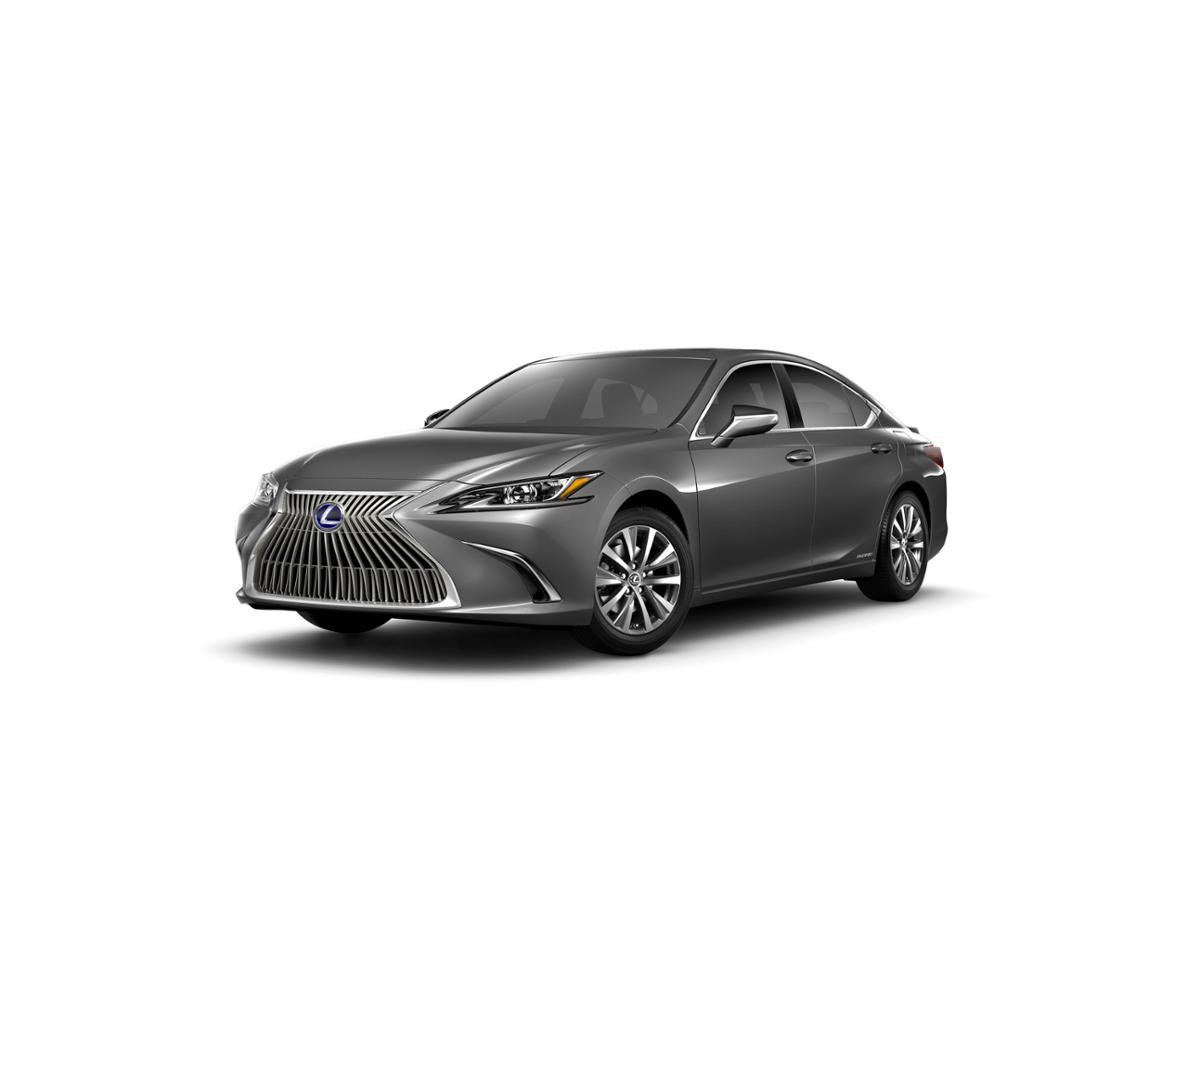 2019 Lexus ES 300h Vehicle Photo in Lakeway, TX 78734